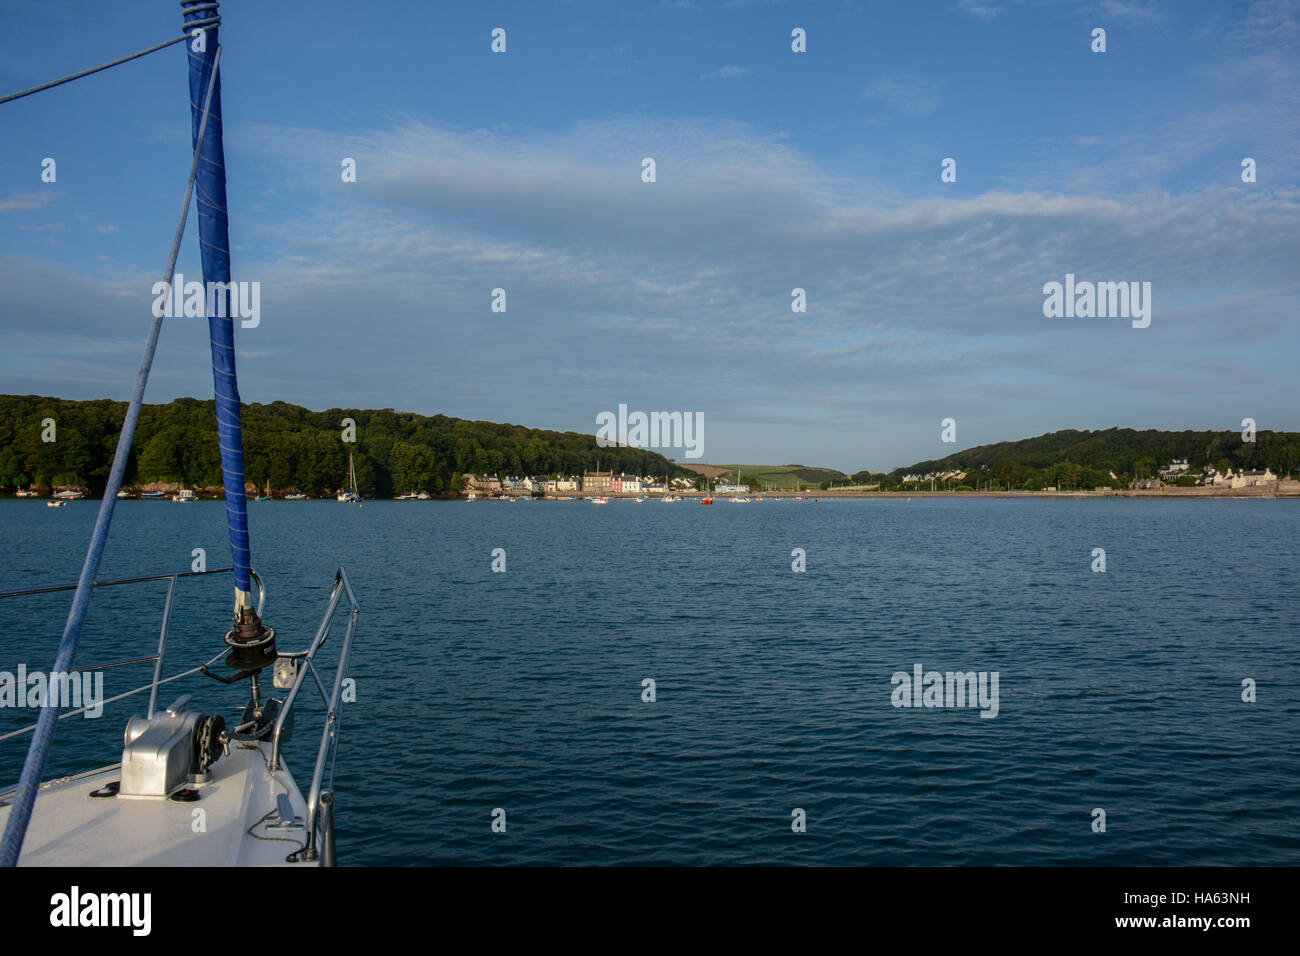 View of Dale village with a yacht's bow anchored in the bay. Blue summer sky with white clouds, blue sea with ripples. Stock Photo